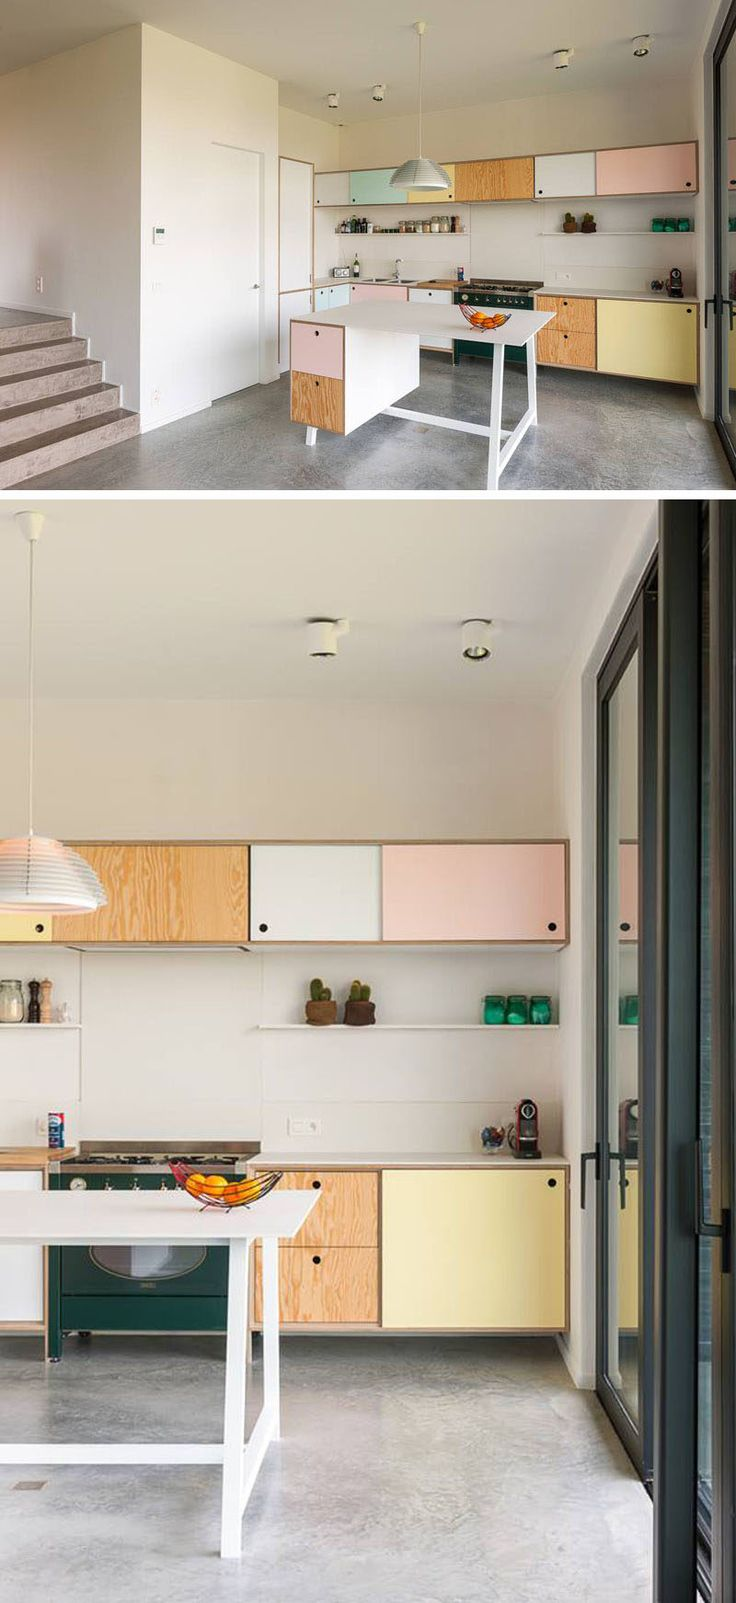 Kitchen Design Idea - Cabinet Hardware Alternatives // Cut Outs -- Cut outs can be done in a number of different ways to create various looks on the front of your cabinets. You can go with small finger holes, square openings or get artistic and create a unique design like stars.